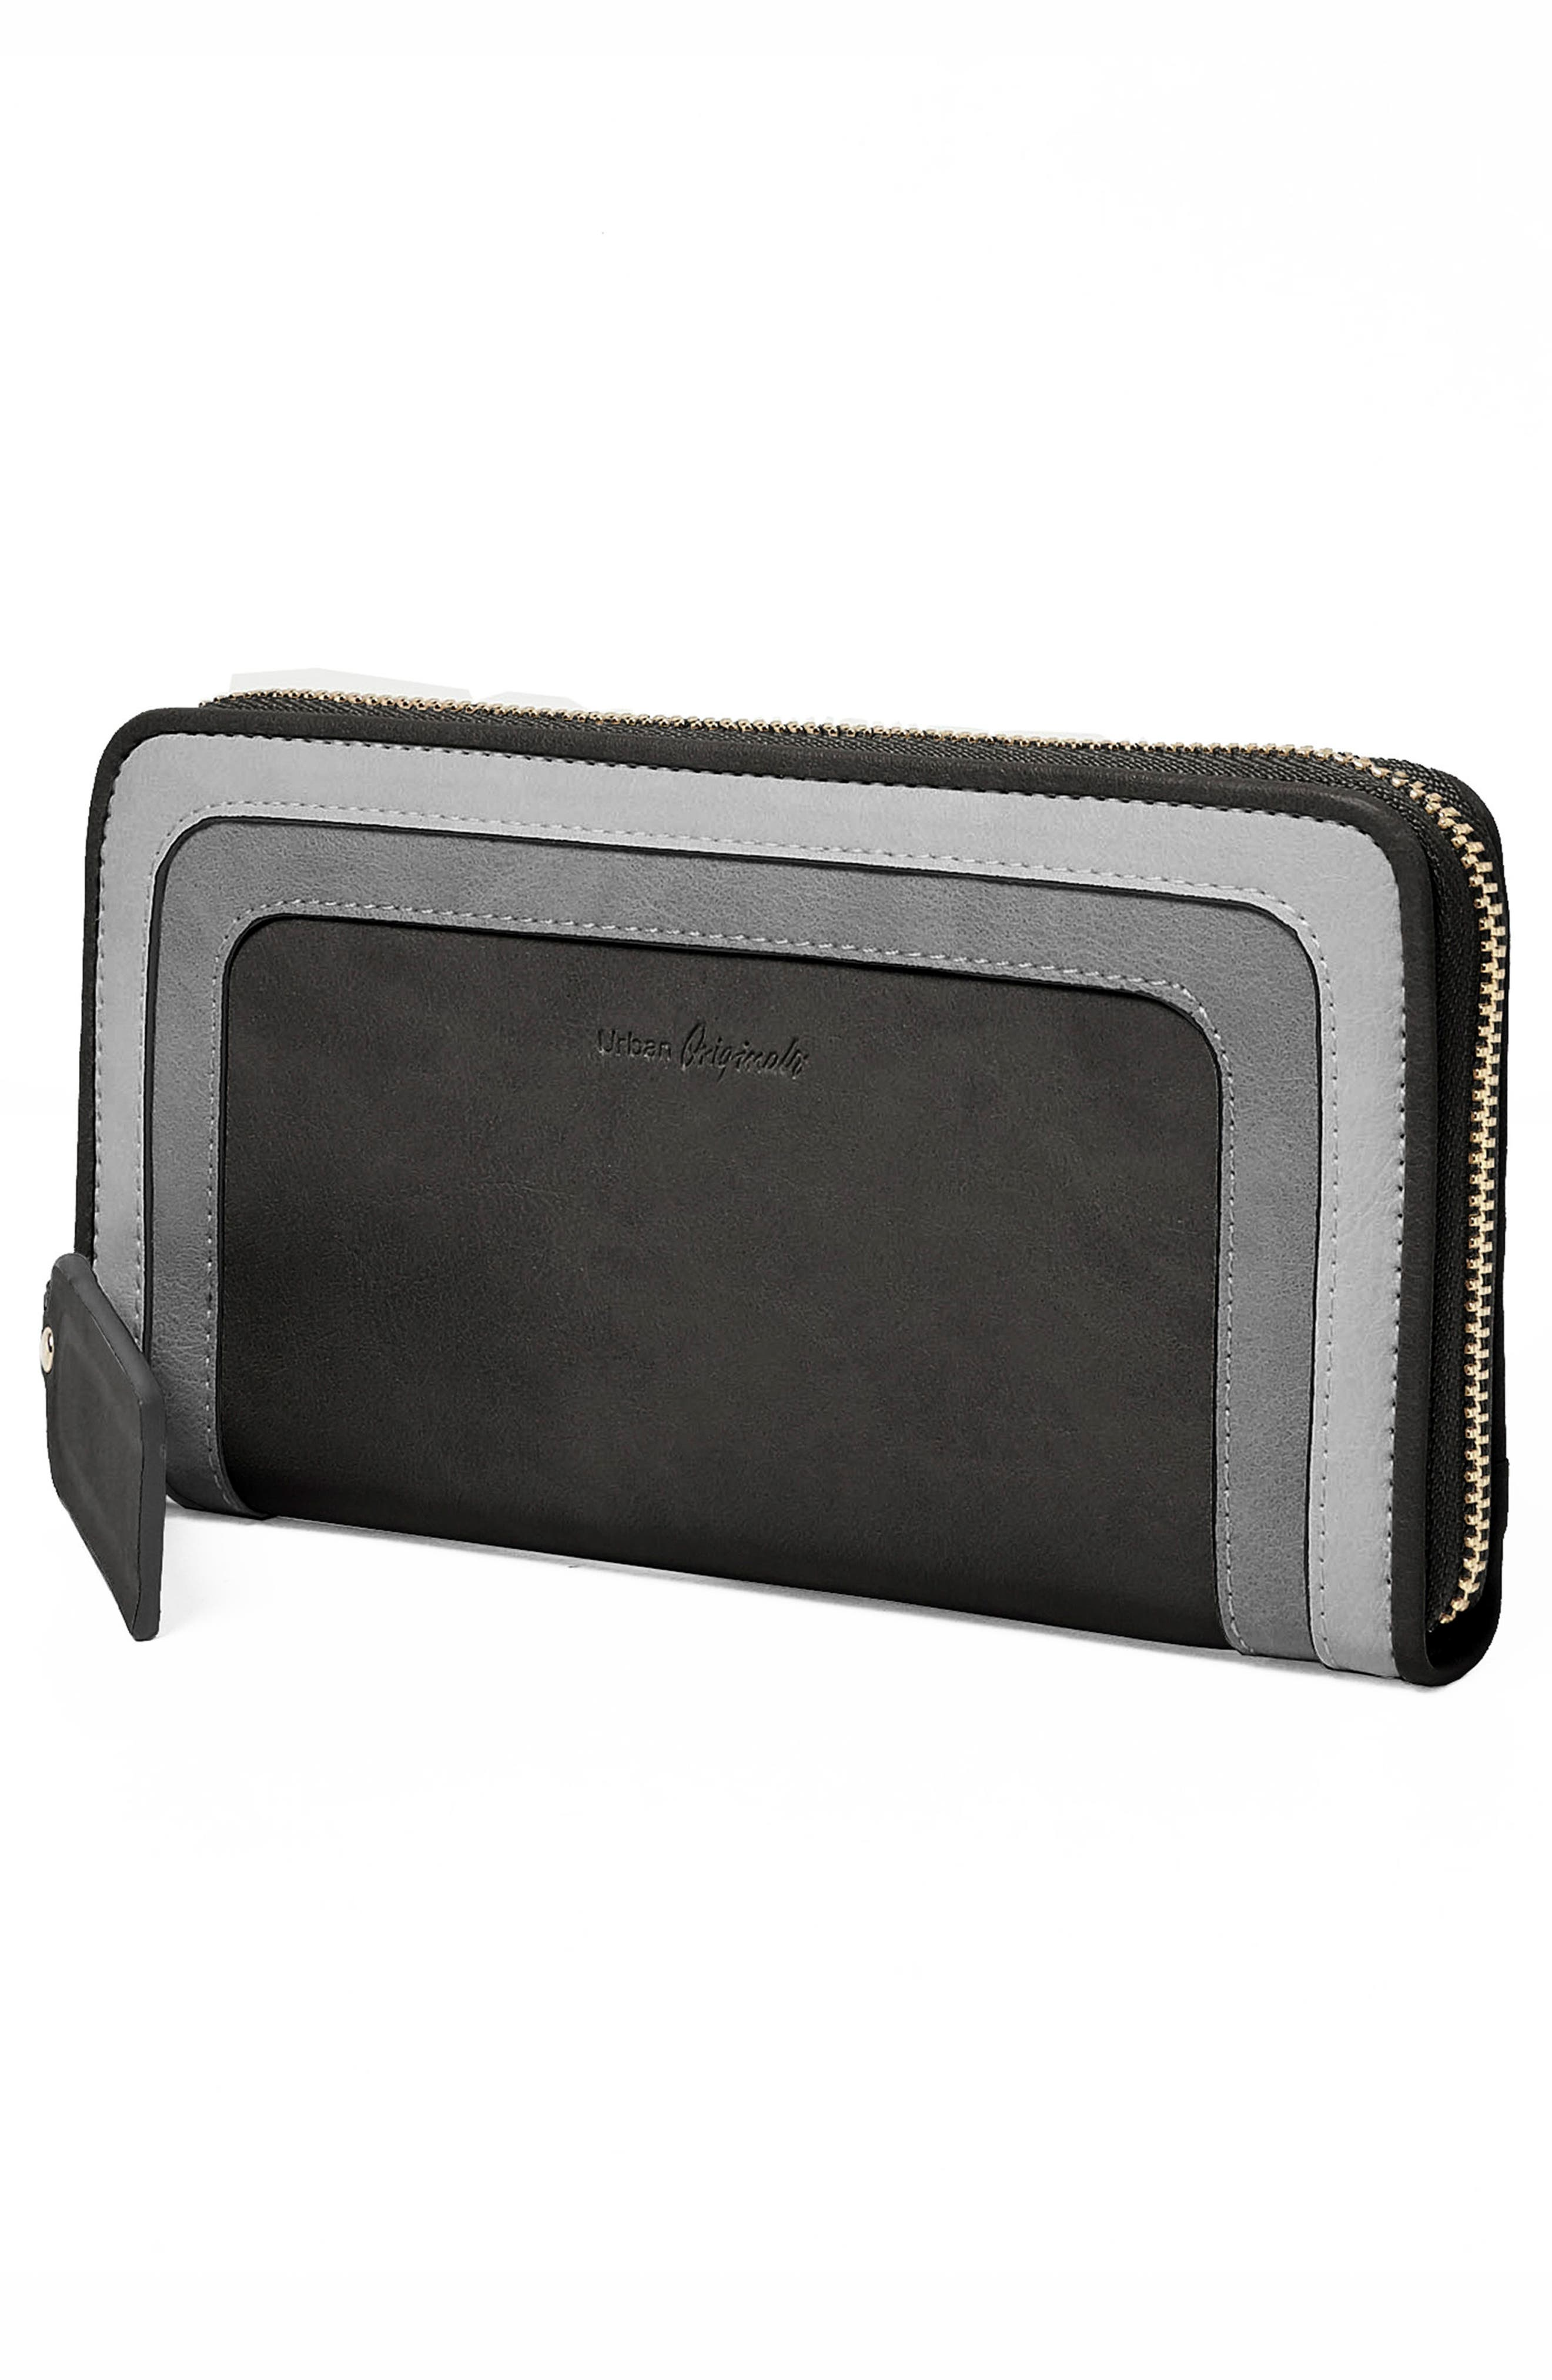 Drama Queen Faux Leather Zip Wallet,                             Alternate thumbnail 3, color,                             001